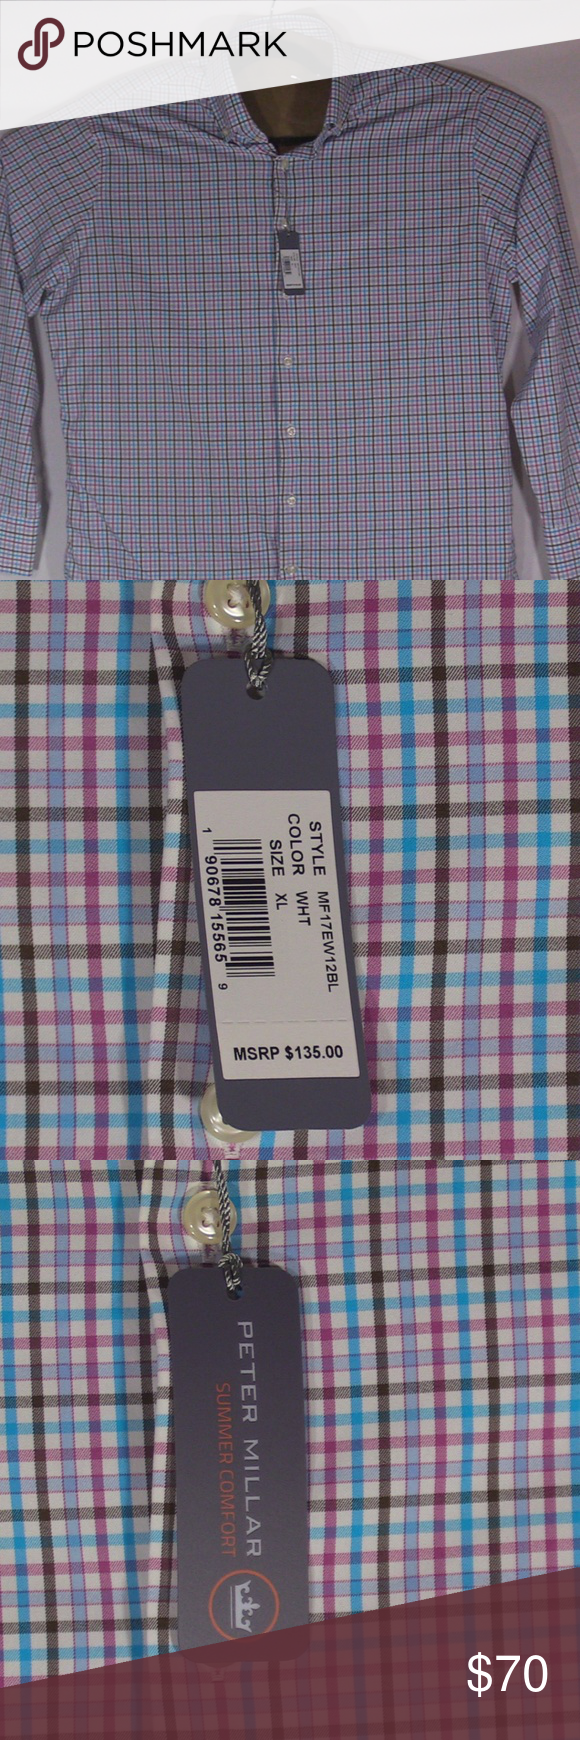 c24d1ed85ef9 New Peter Millar Crown Sport Summer Comfort XL Up for sale New With Tags  New Collection